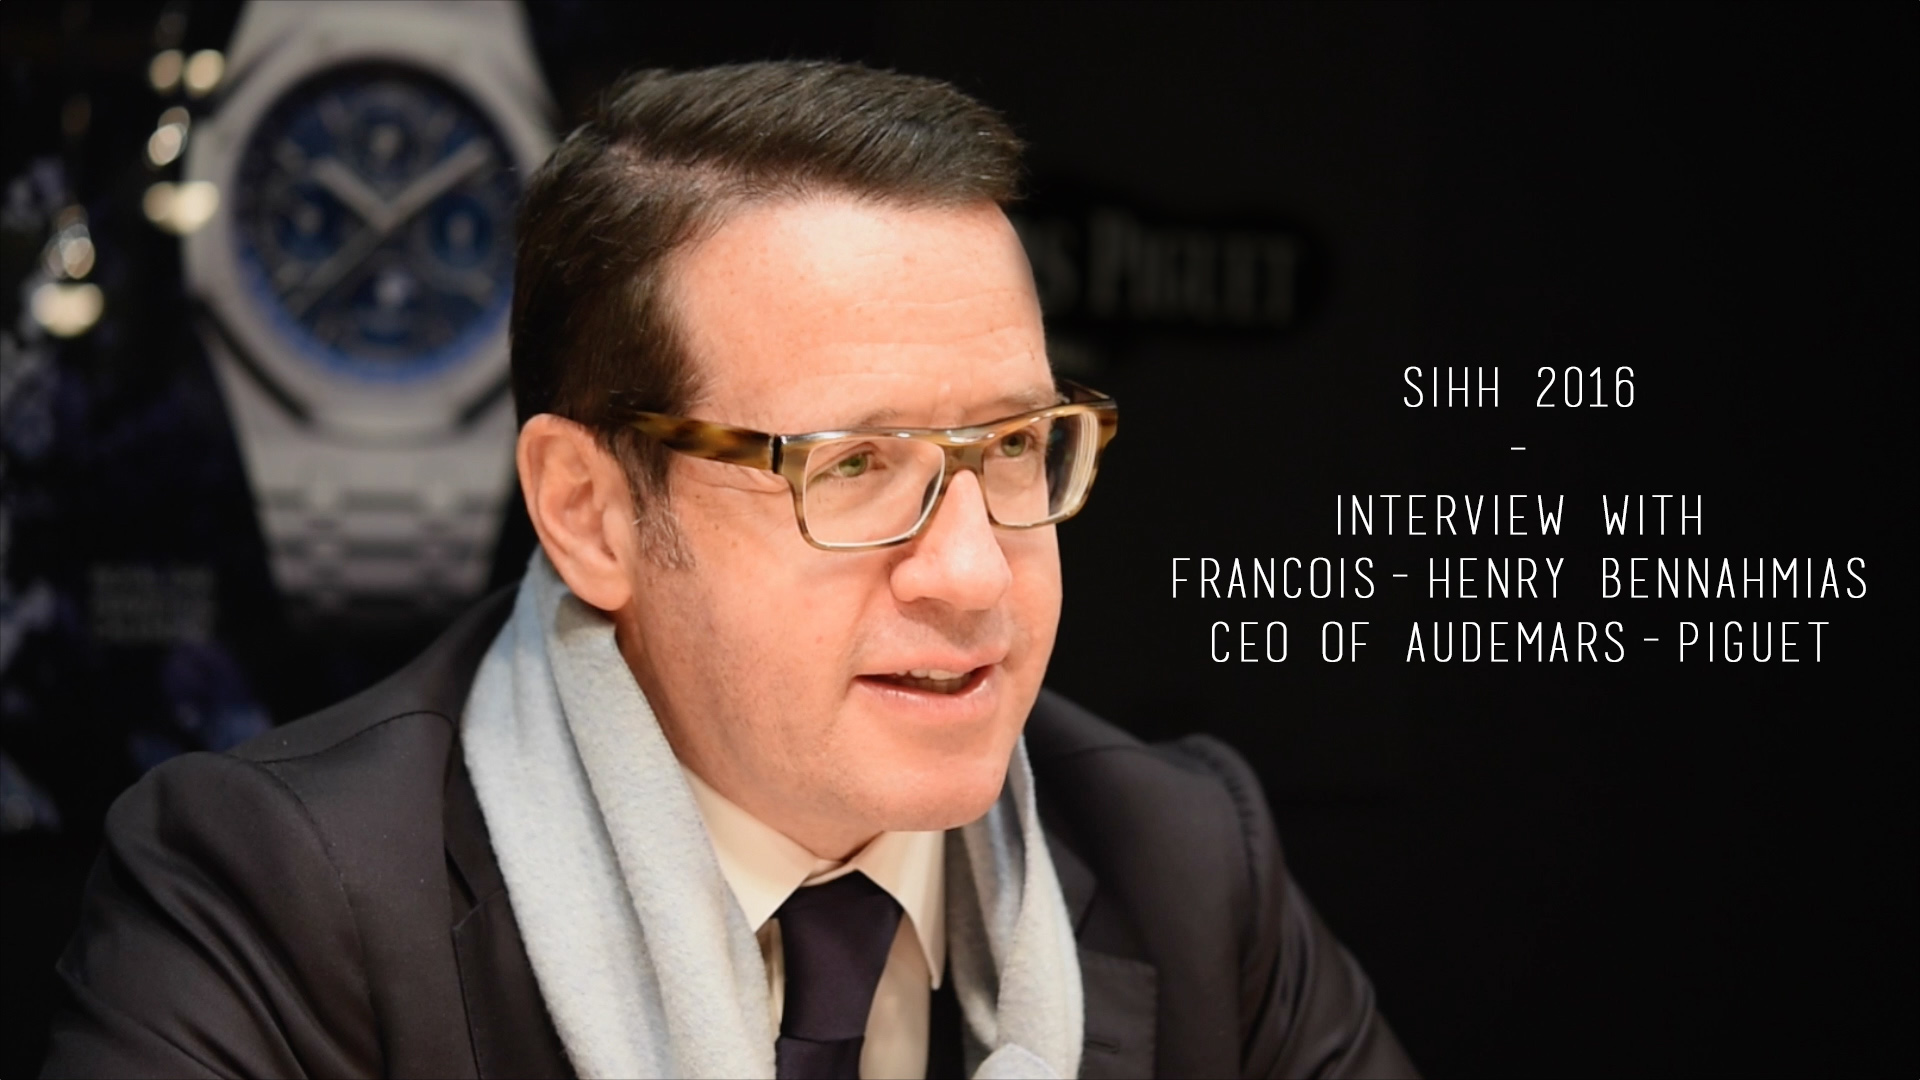 Interview Audemars Piguet CEO Francois Henry Bennahmias - SIHH 2016 - Talking about future